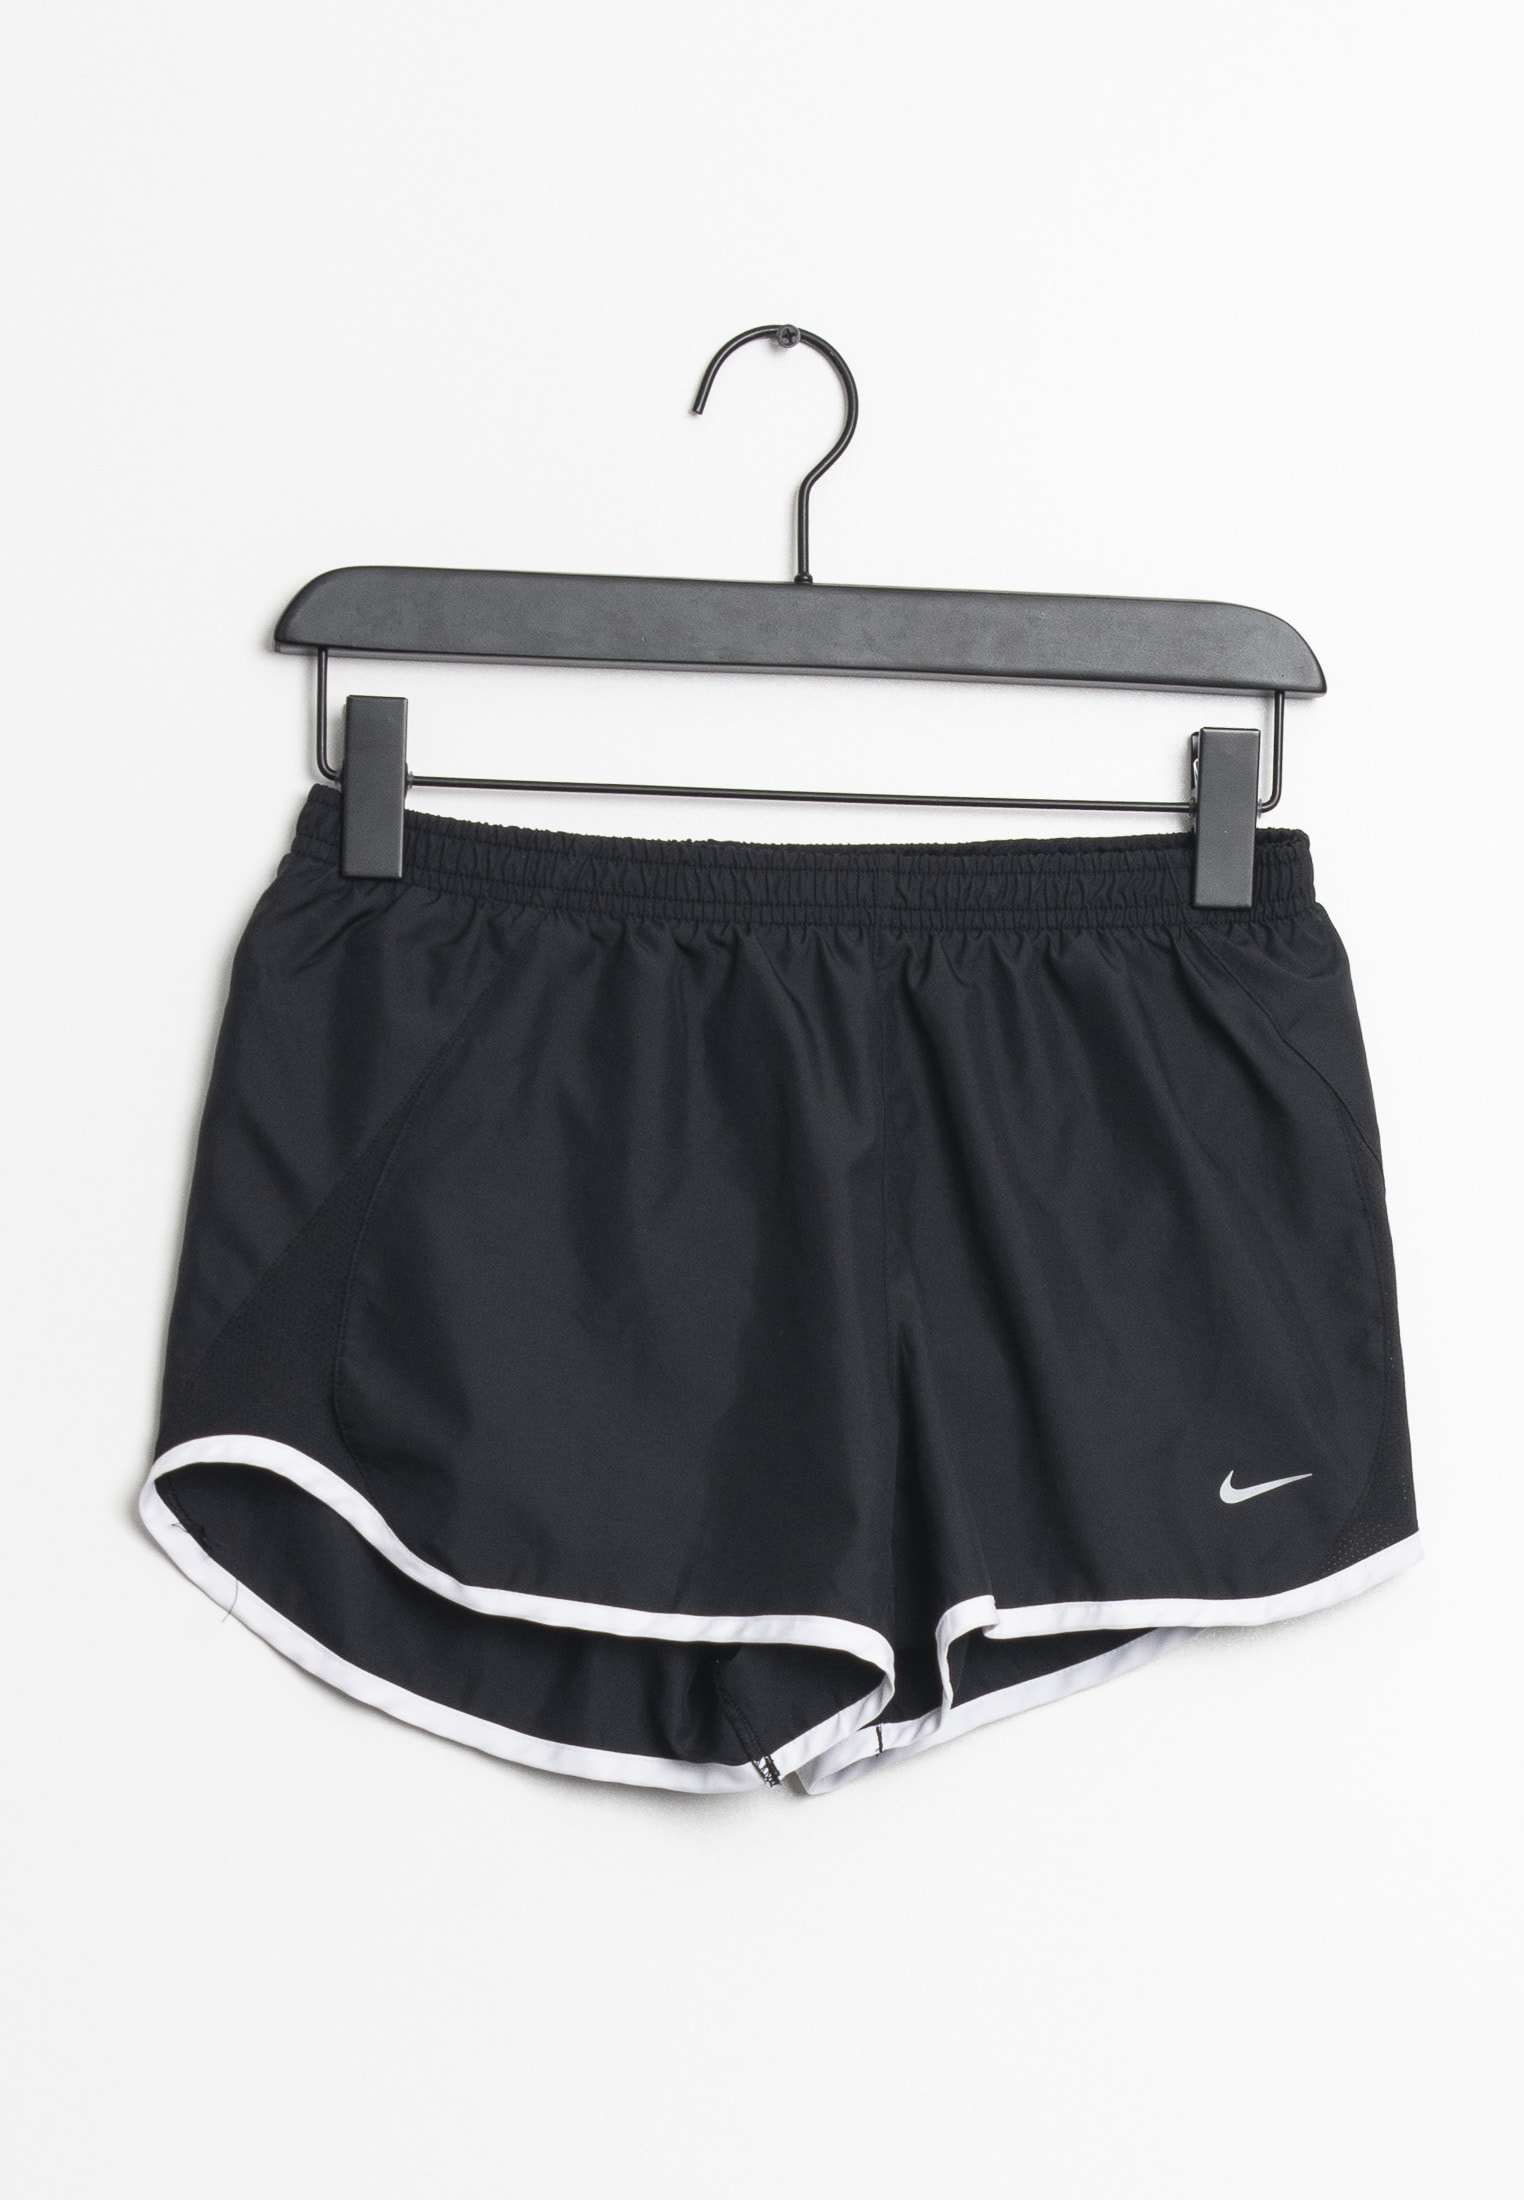 Nike Sportswear shorts, sort, S